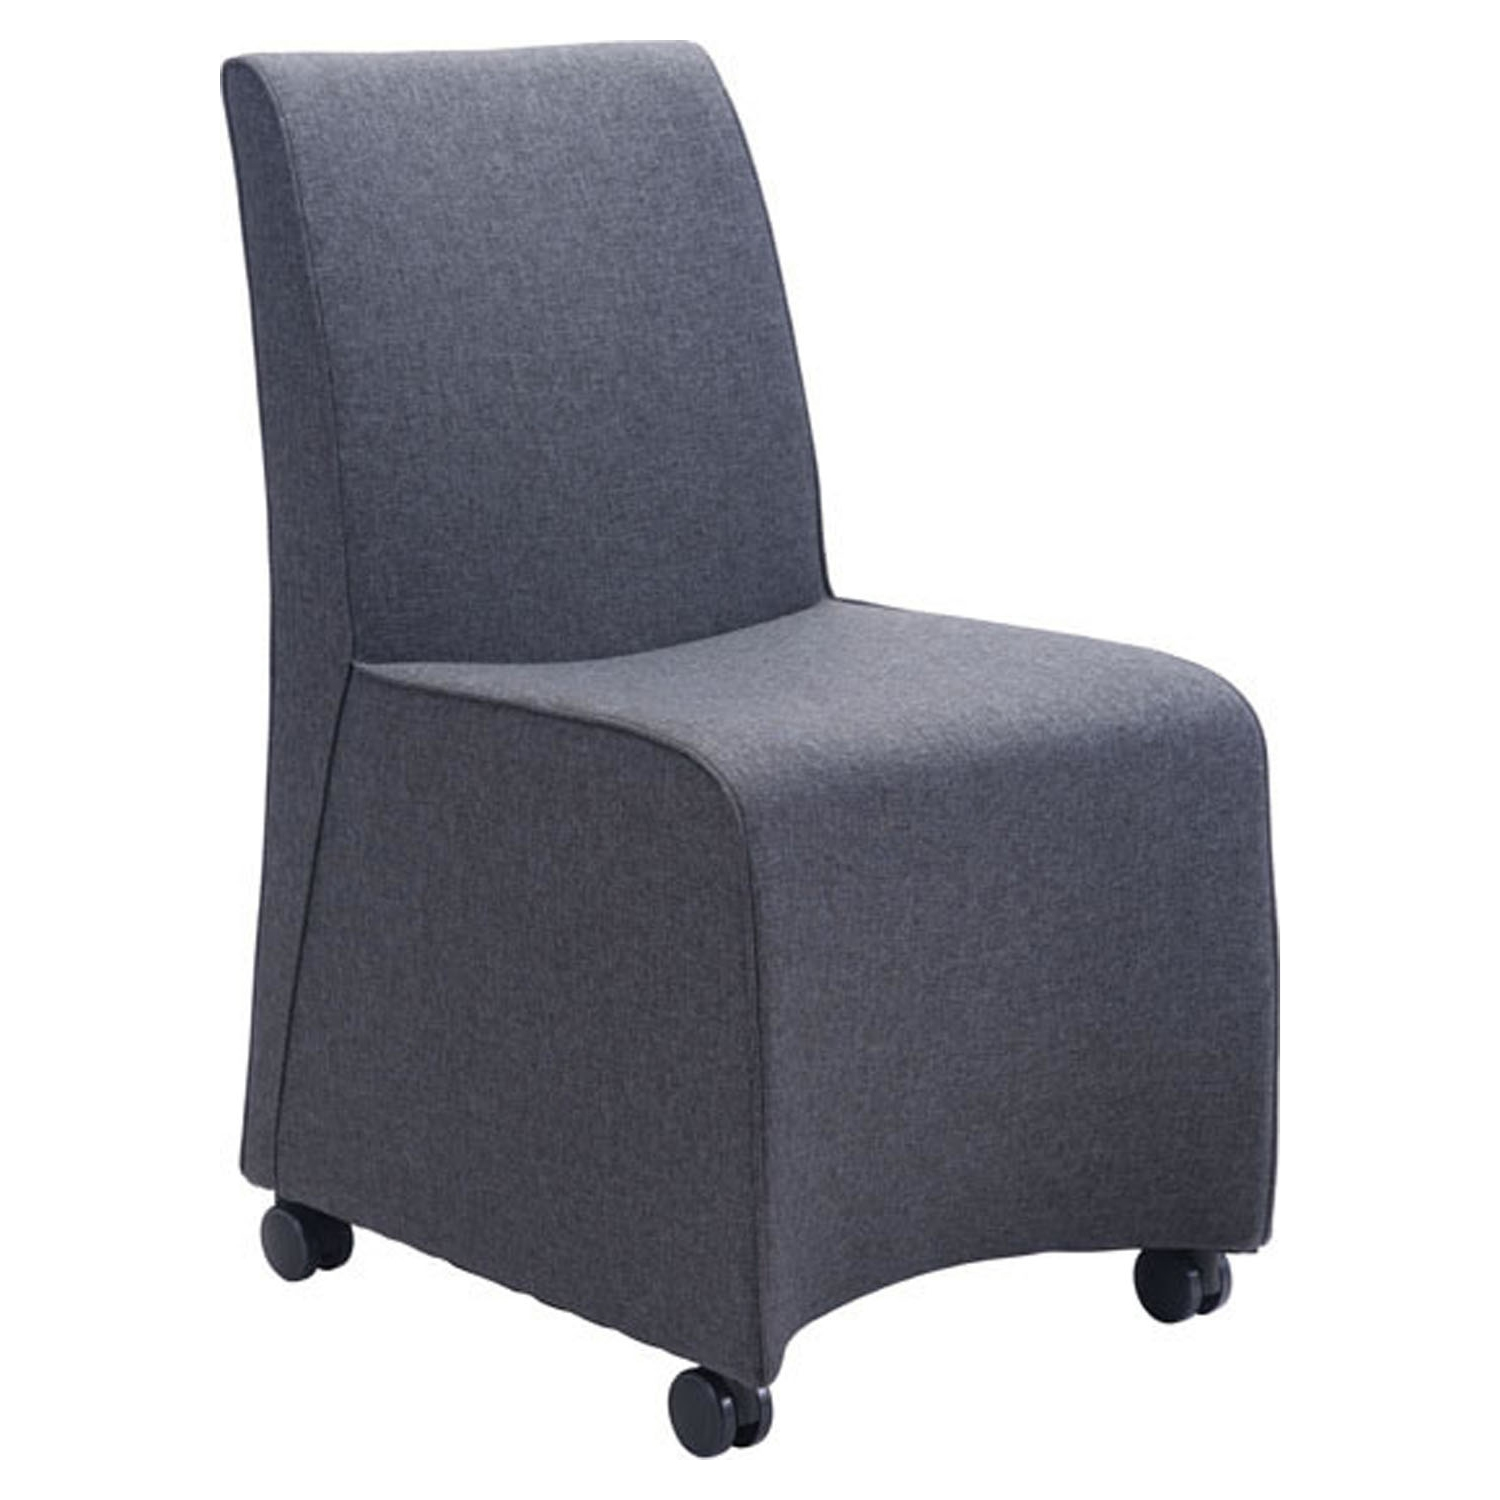 Whittle Dining Chair - Dark Gray - ZM-100266